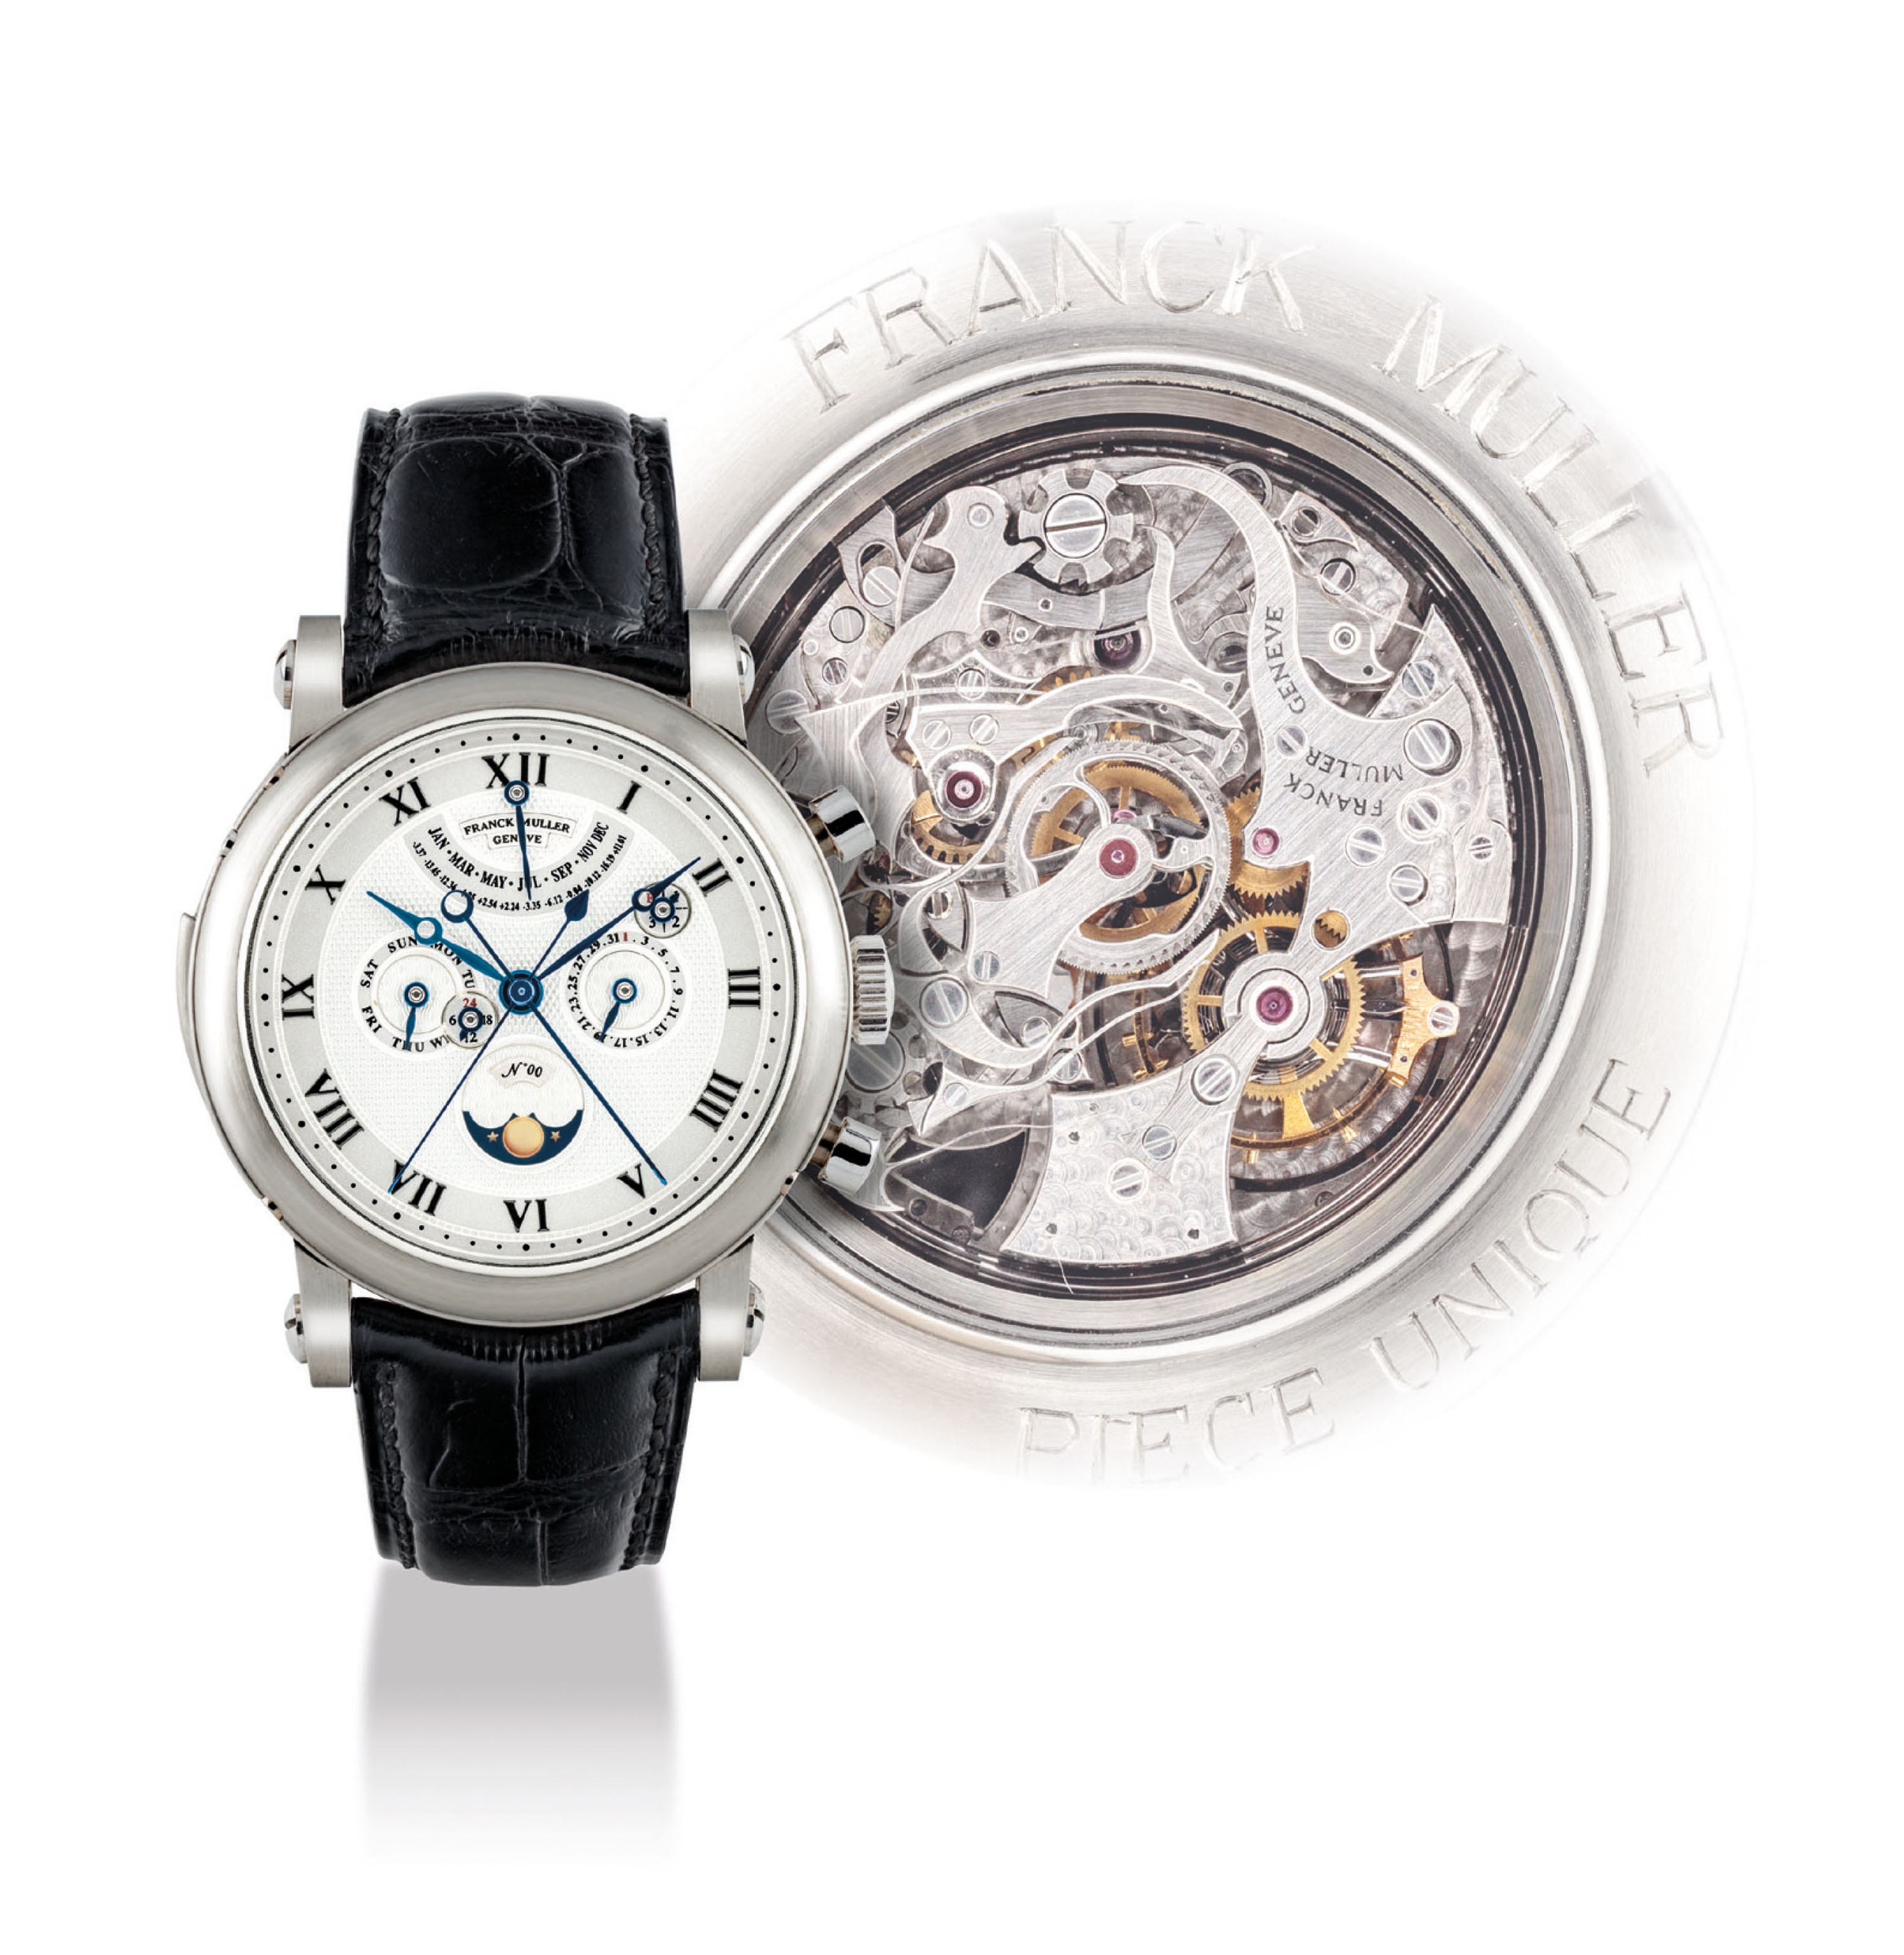 FRANCK MULLER. A UNIQUE AND MAGNIFICENT PLATINUM MINUTE REPEATING TOURBILLON PERPETUAL CALENDAR SPLIT SECONDS CHRONOGRAPH WRISTWATCH WITH EQUATION OF TIME AND MOON PHASES